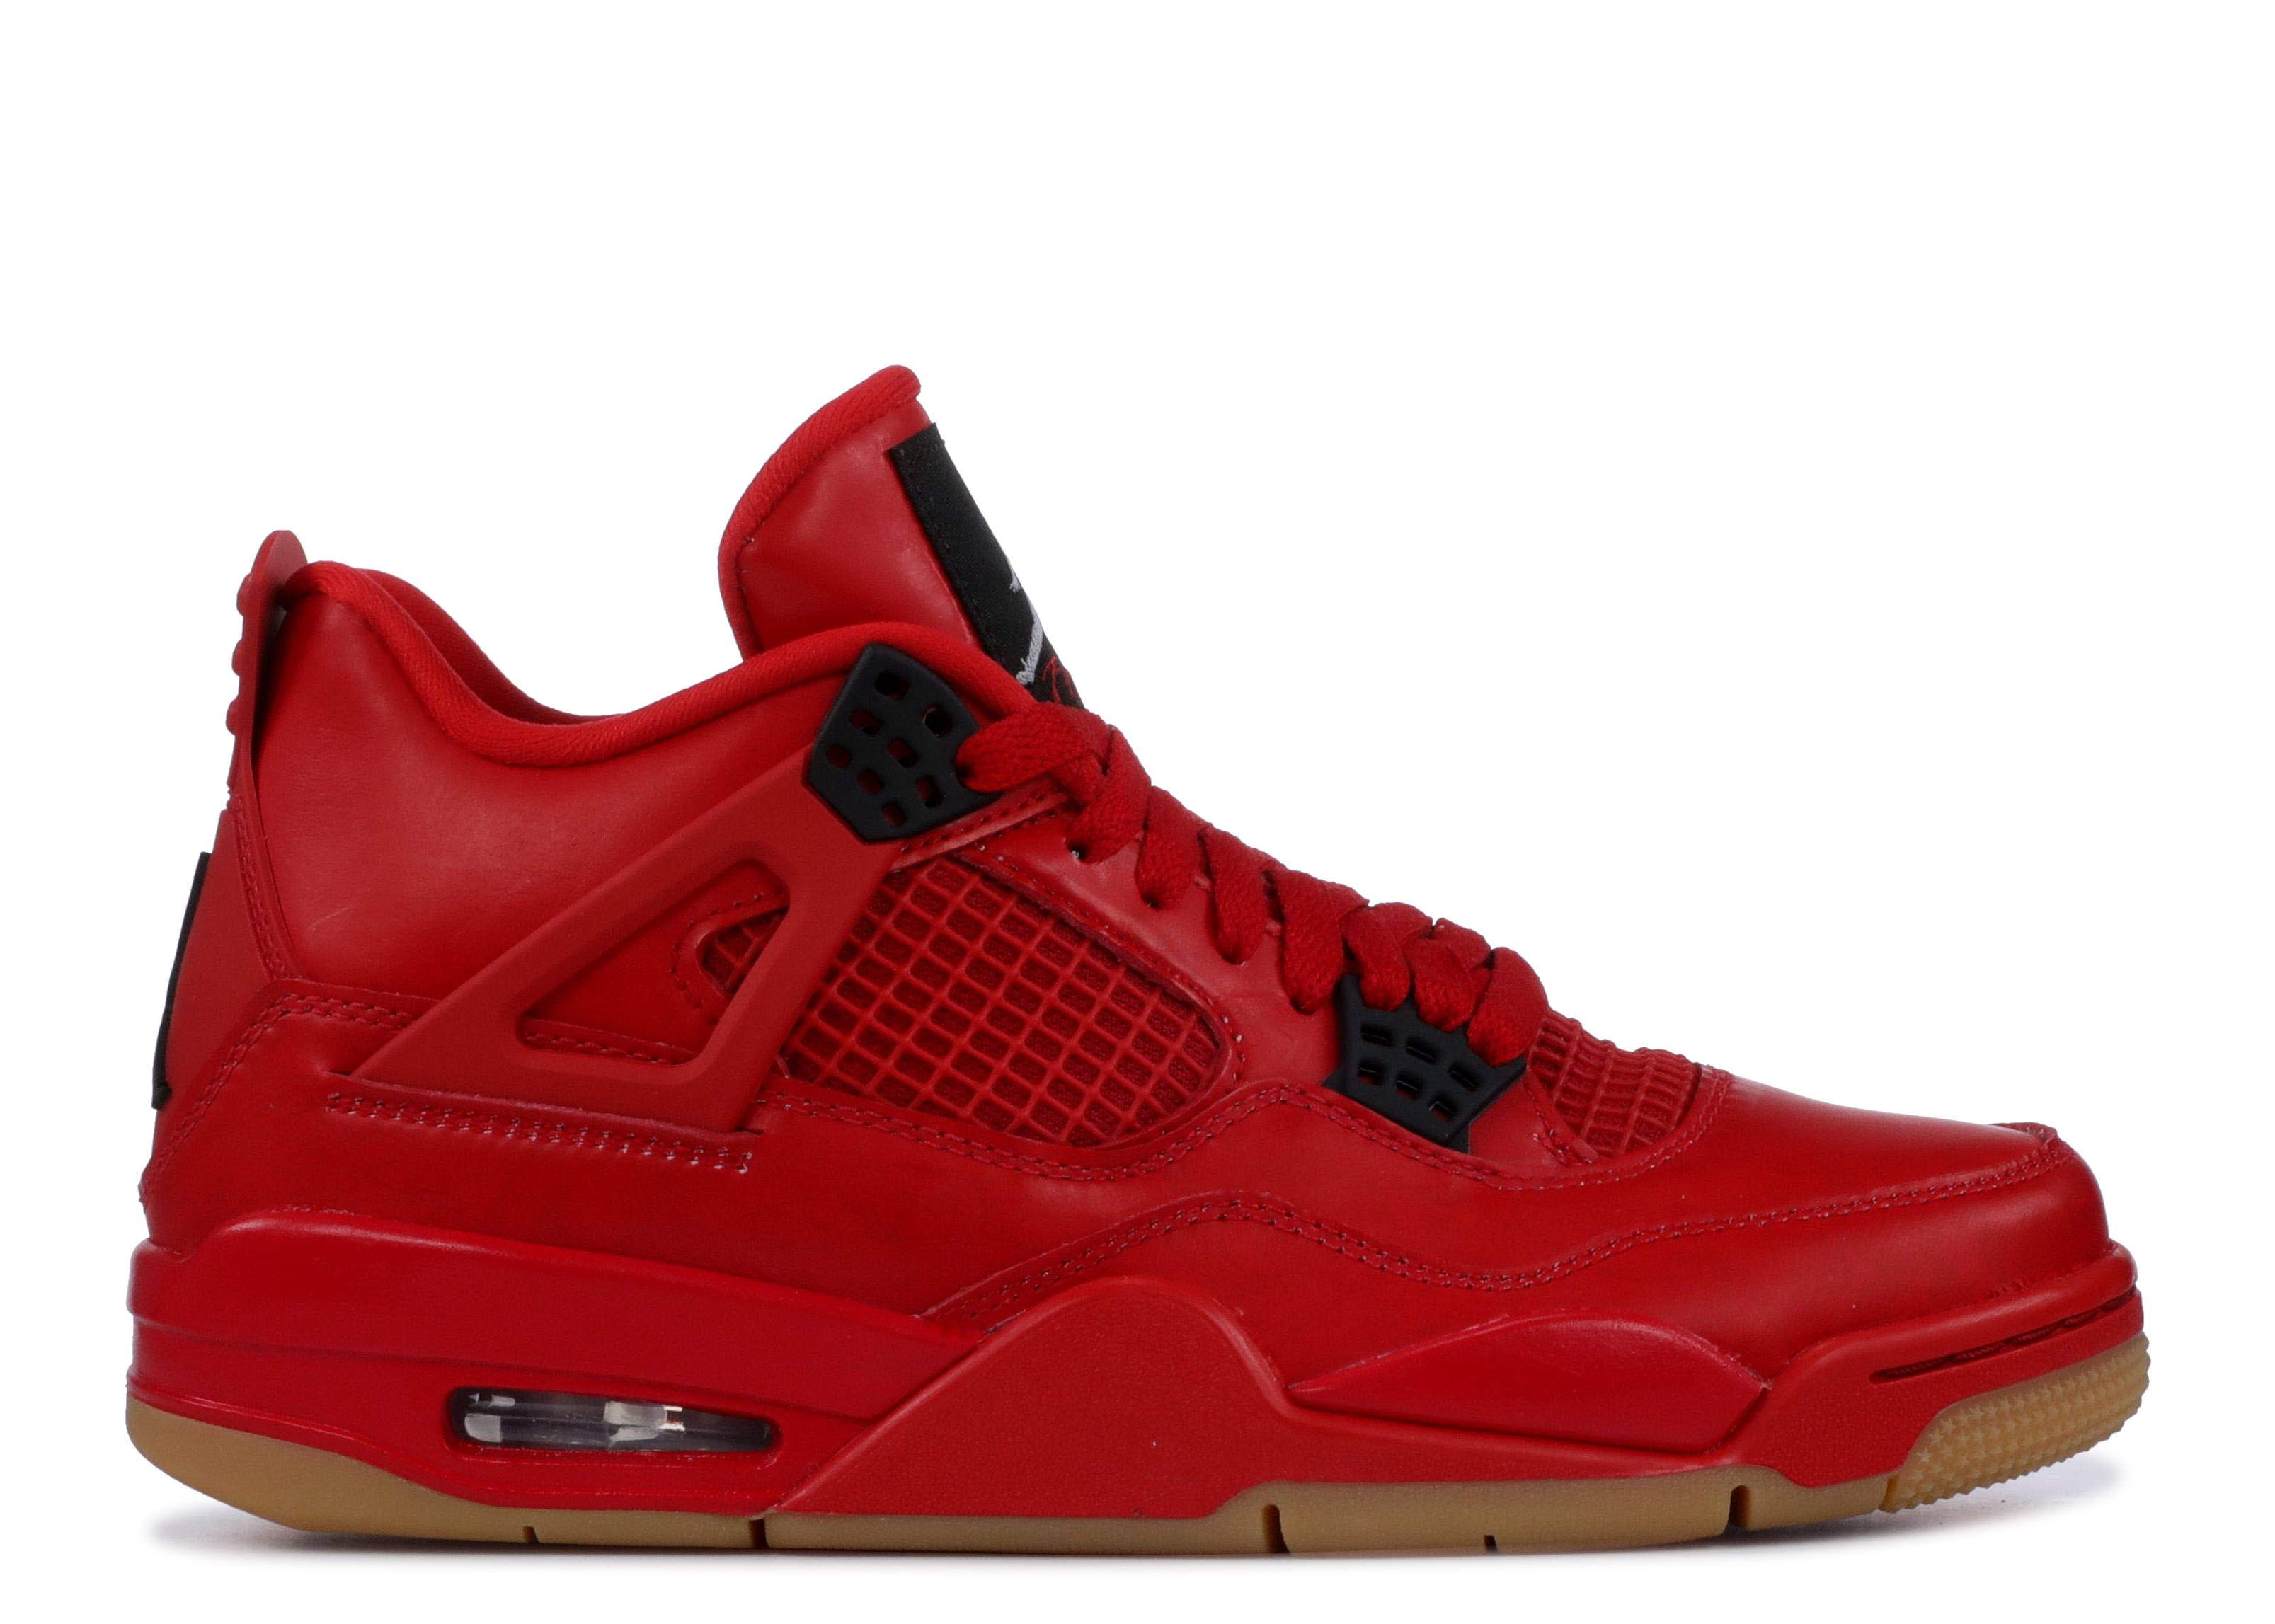 check out c6c05 6674e air jordan. wmns air jordan 4 retro nrg